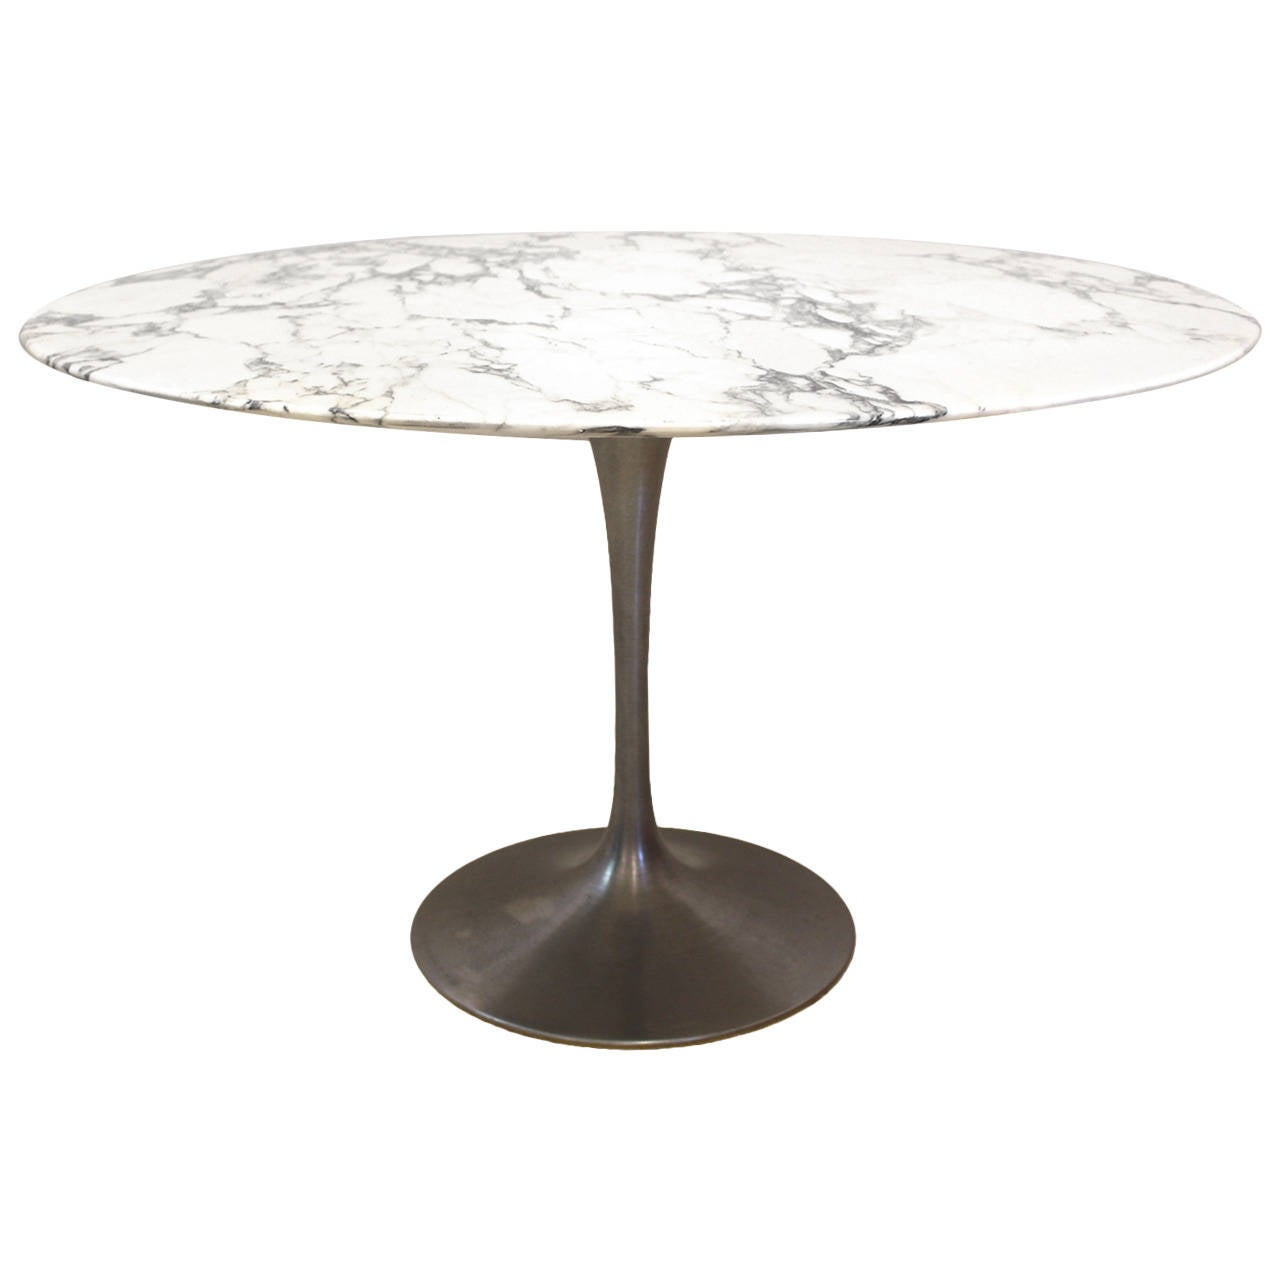 Tulip Tisch Tulip Dining Table By Eero Saarinen, 1956 At 1stdibs